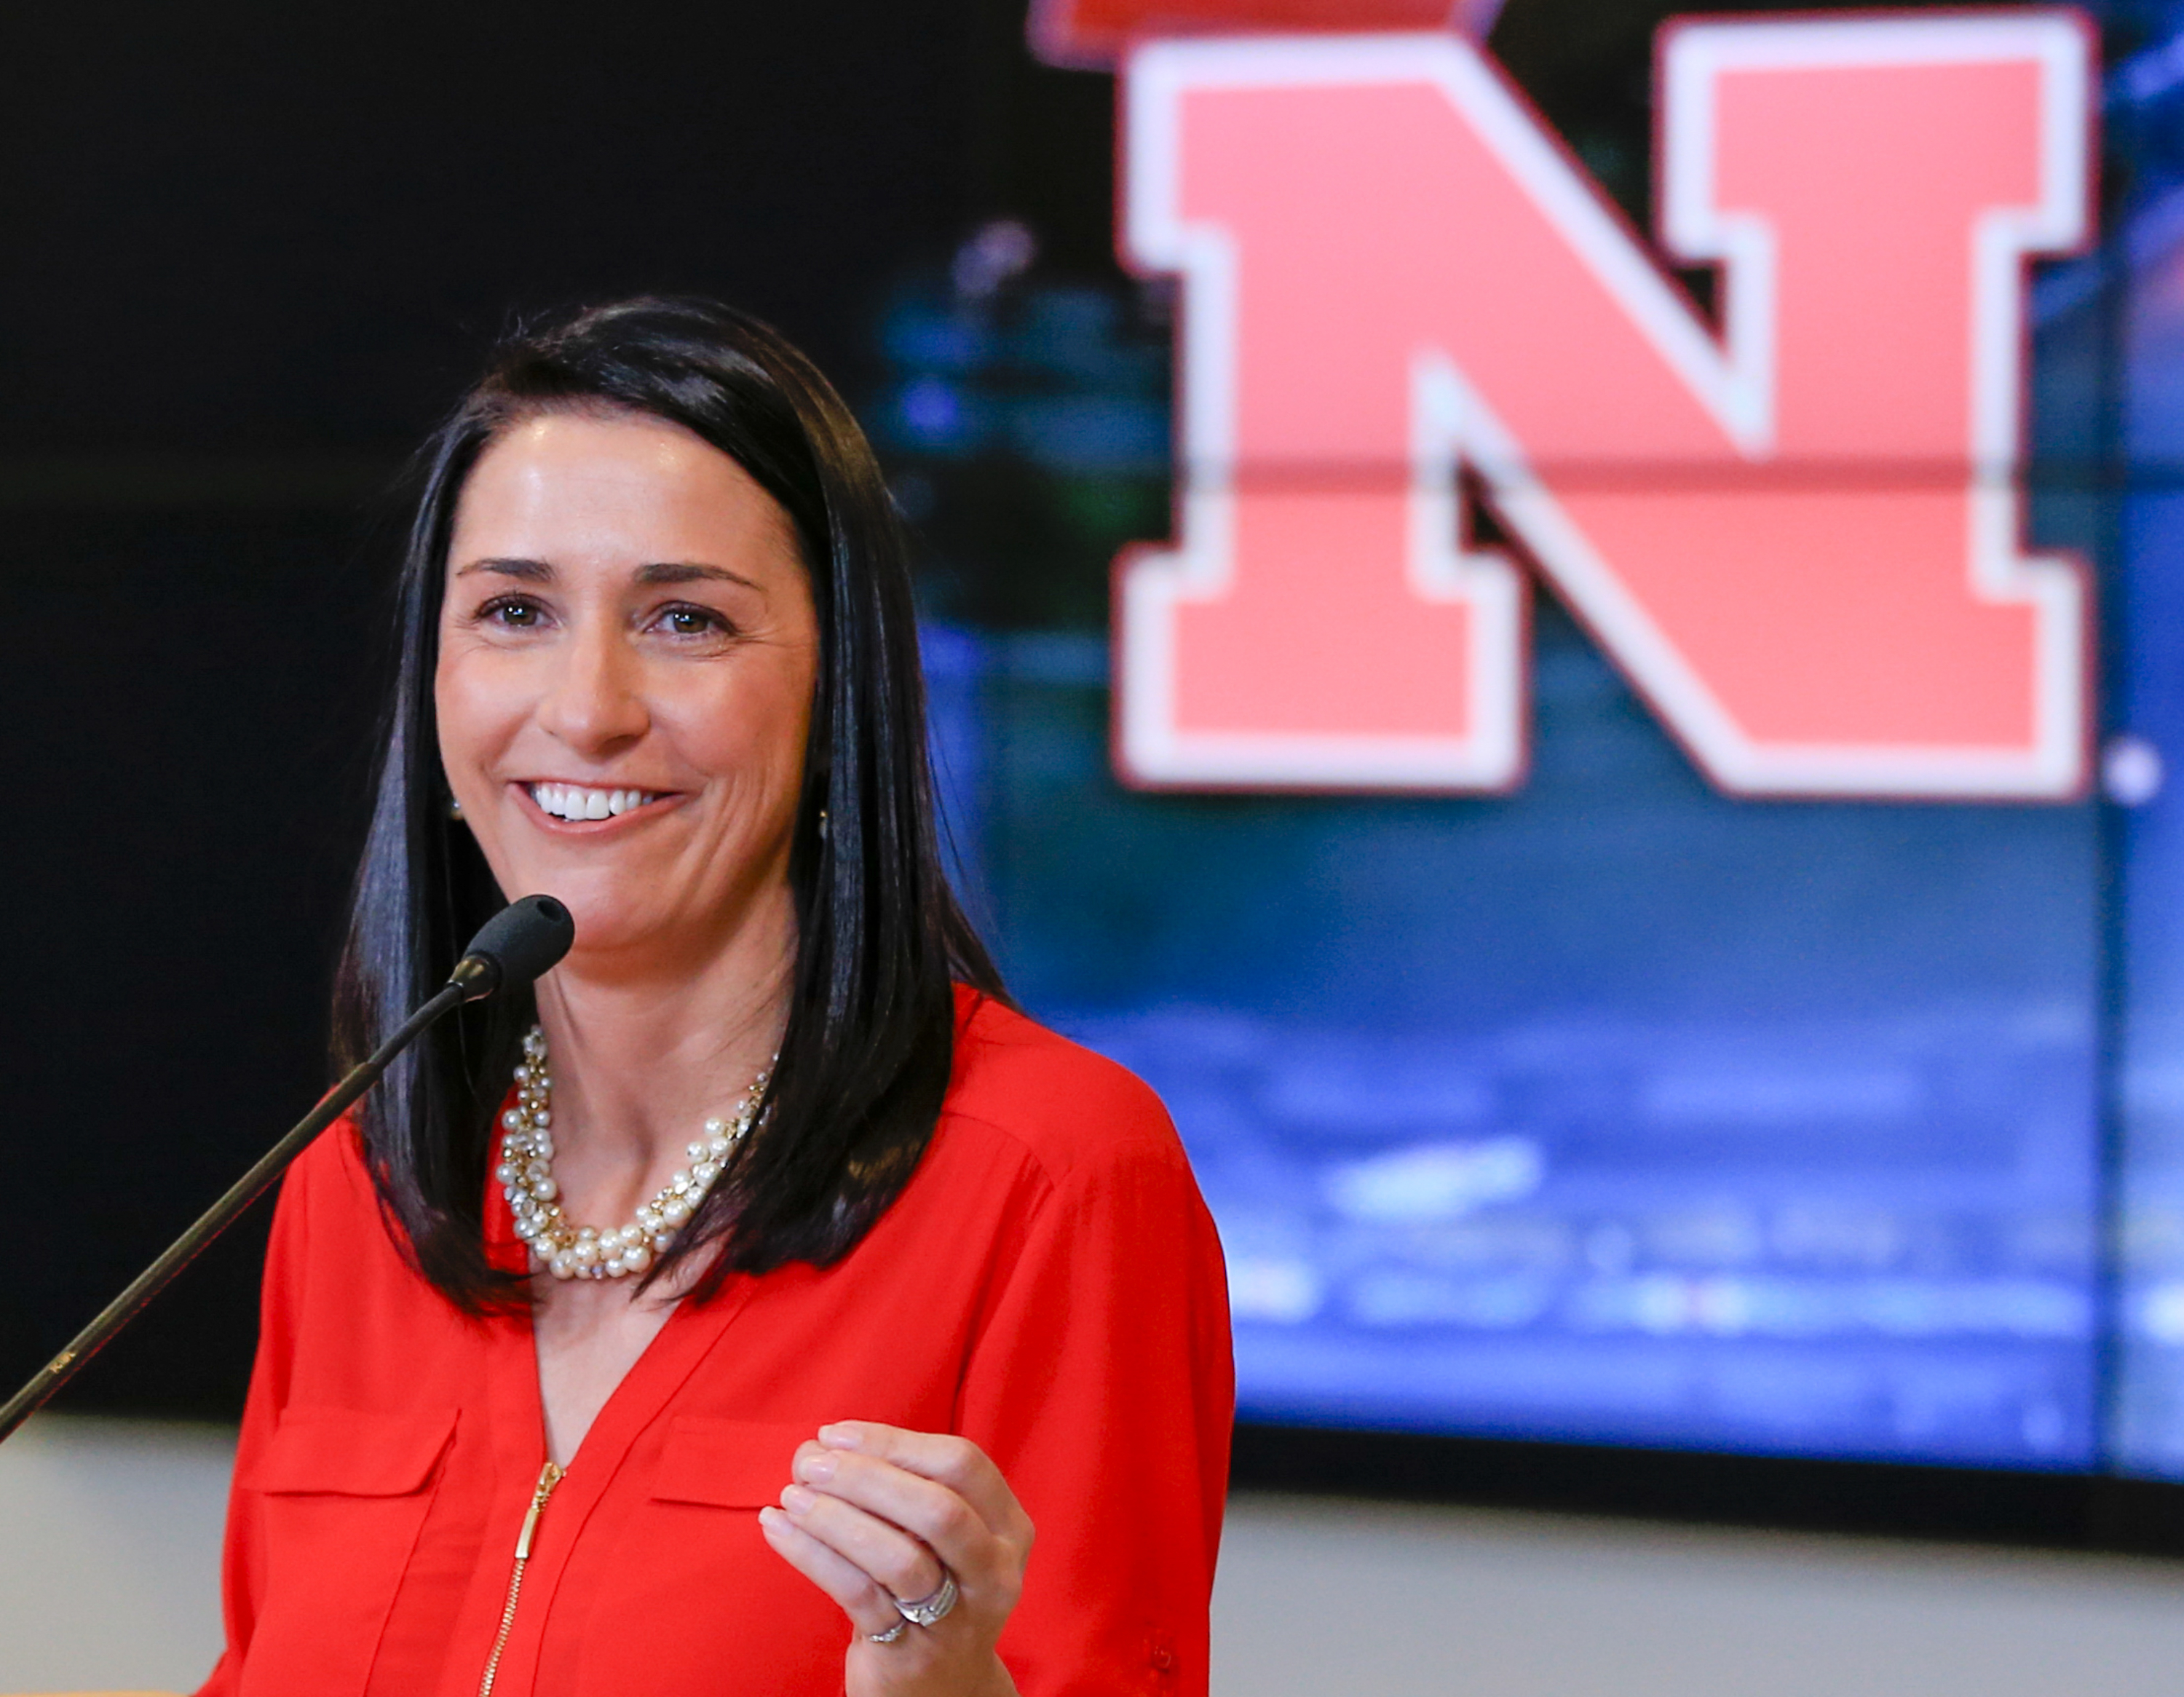 Amy Williams, Nebraska's new women's basketball coach, speaks during an NCAA college basketball news conference where she was introduced, Tuesday, April 12, 2016, in Lincoln, Neb. Williams replaces Connie Yori, who resigned last week amid allegations she